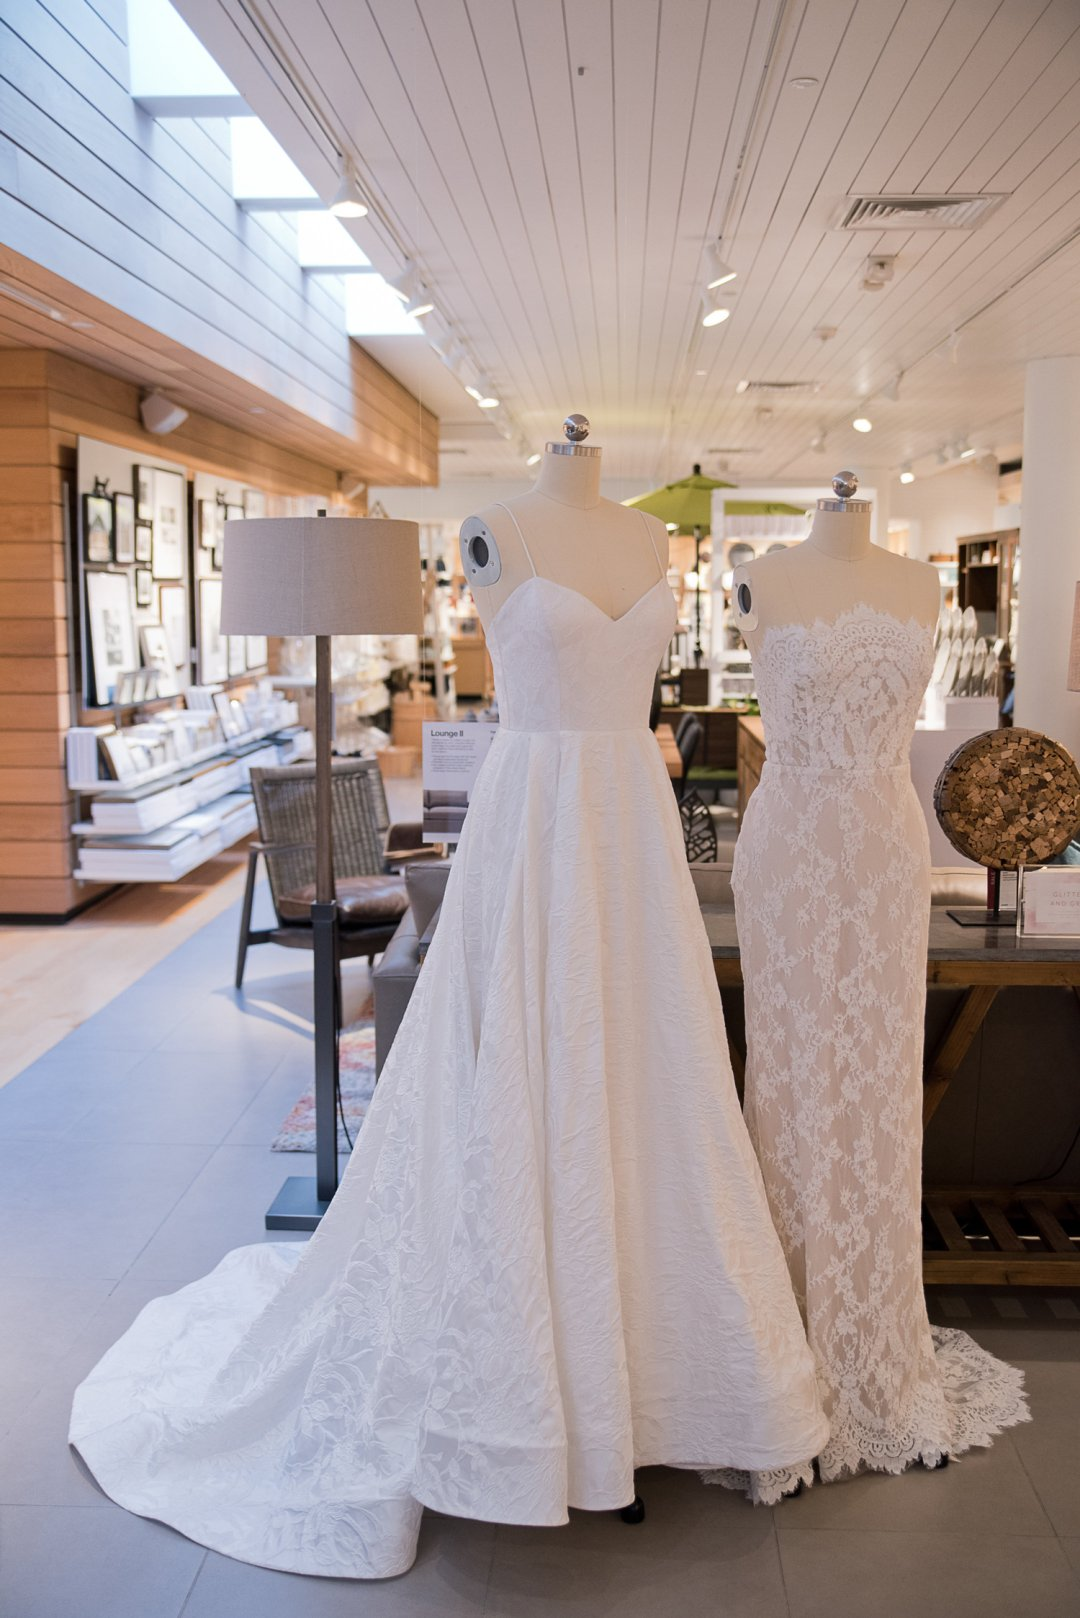 White wedding dressed on display at Crate and Barrel Private Registry Event